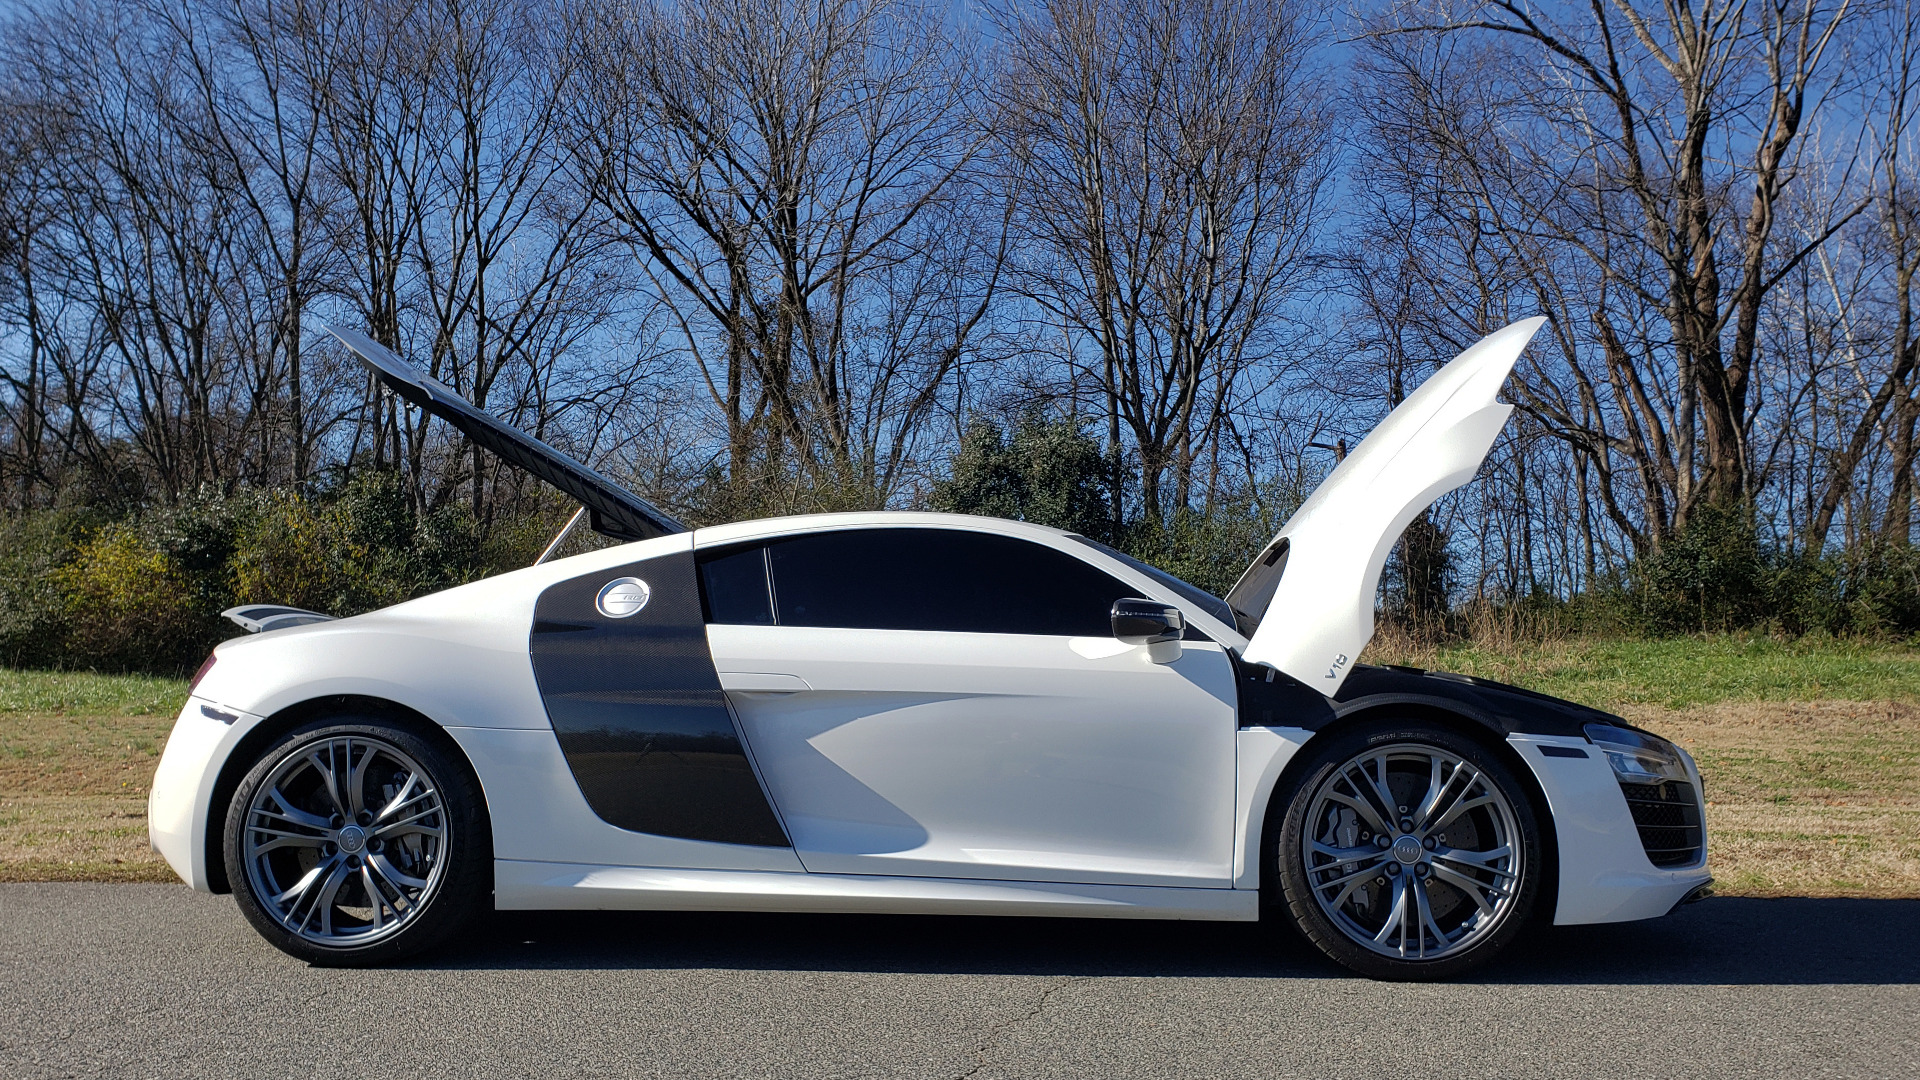 Used 2015 Audi R8 V10 PLUS / S-TRONIC / B&O SOUND / SPORT EXH / REARVIEW for sale Sold at Formula Imports in Charlotte NC 28227 21